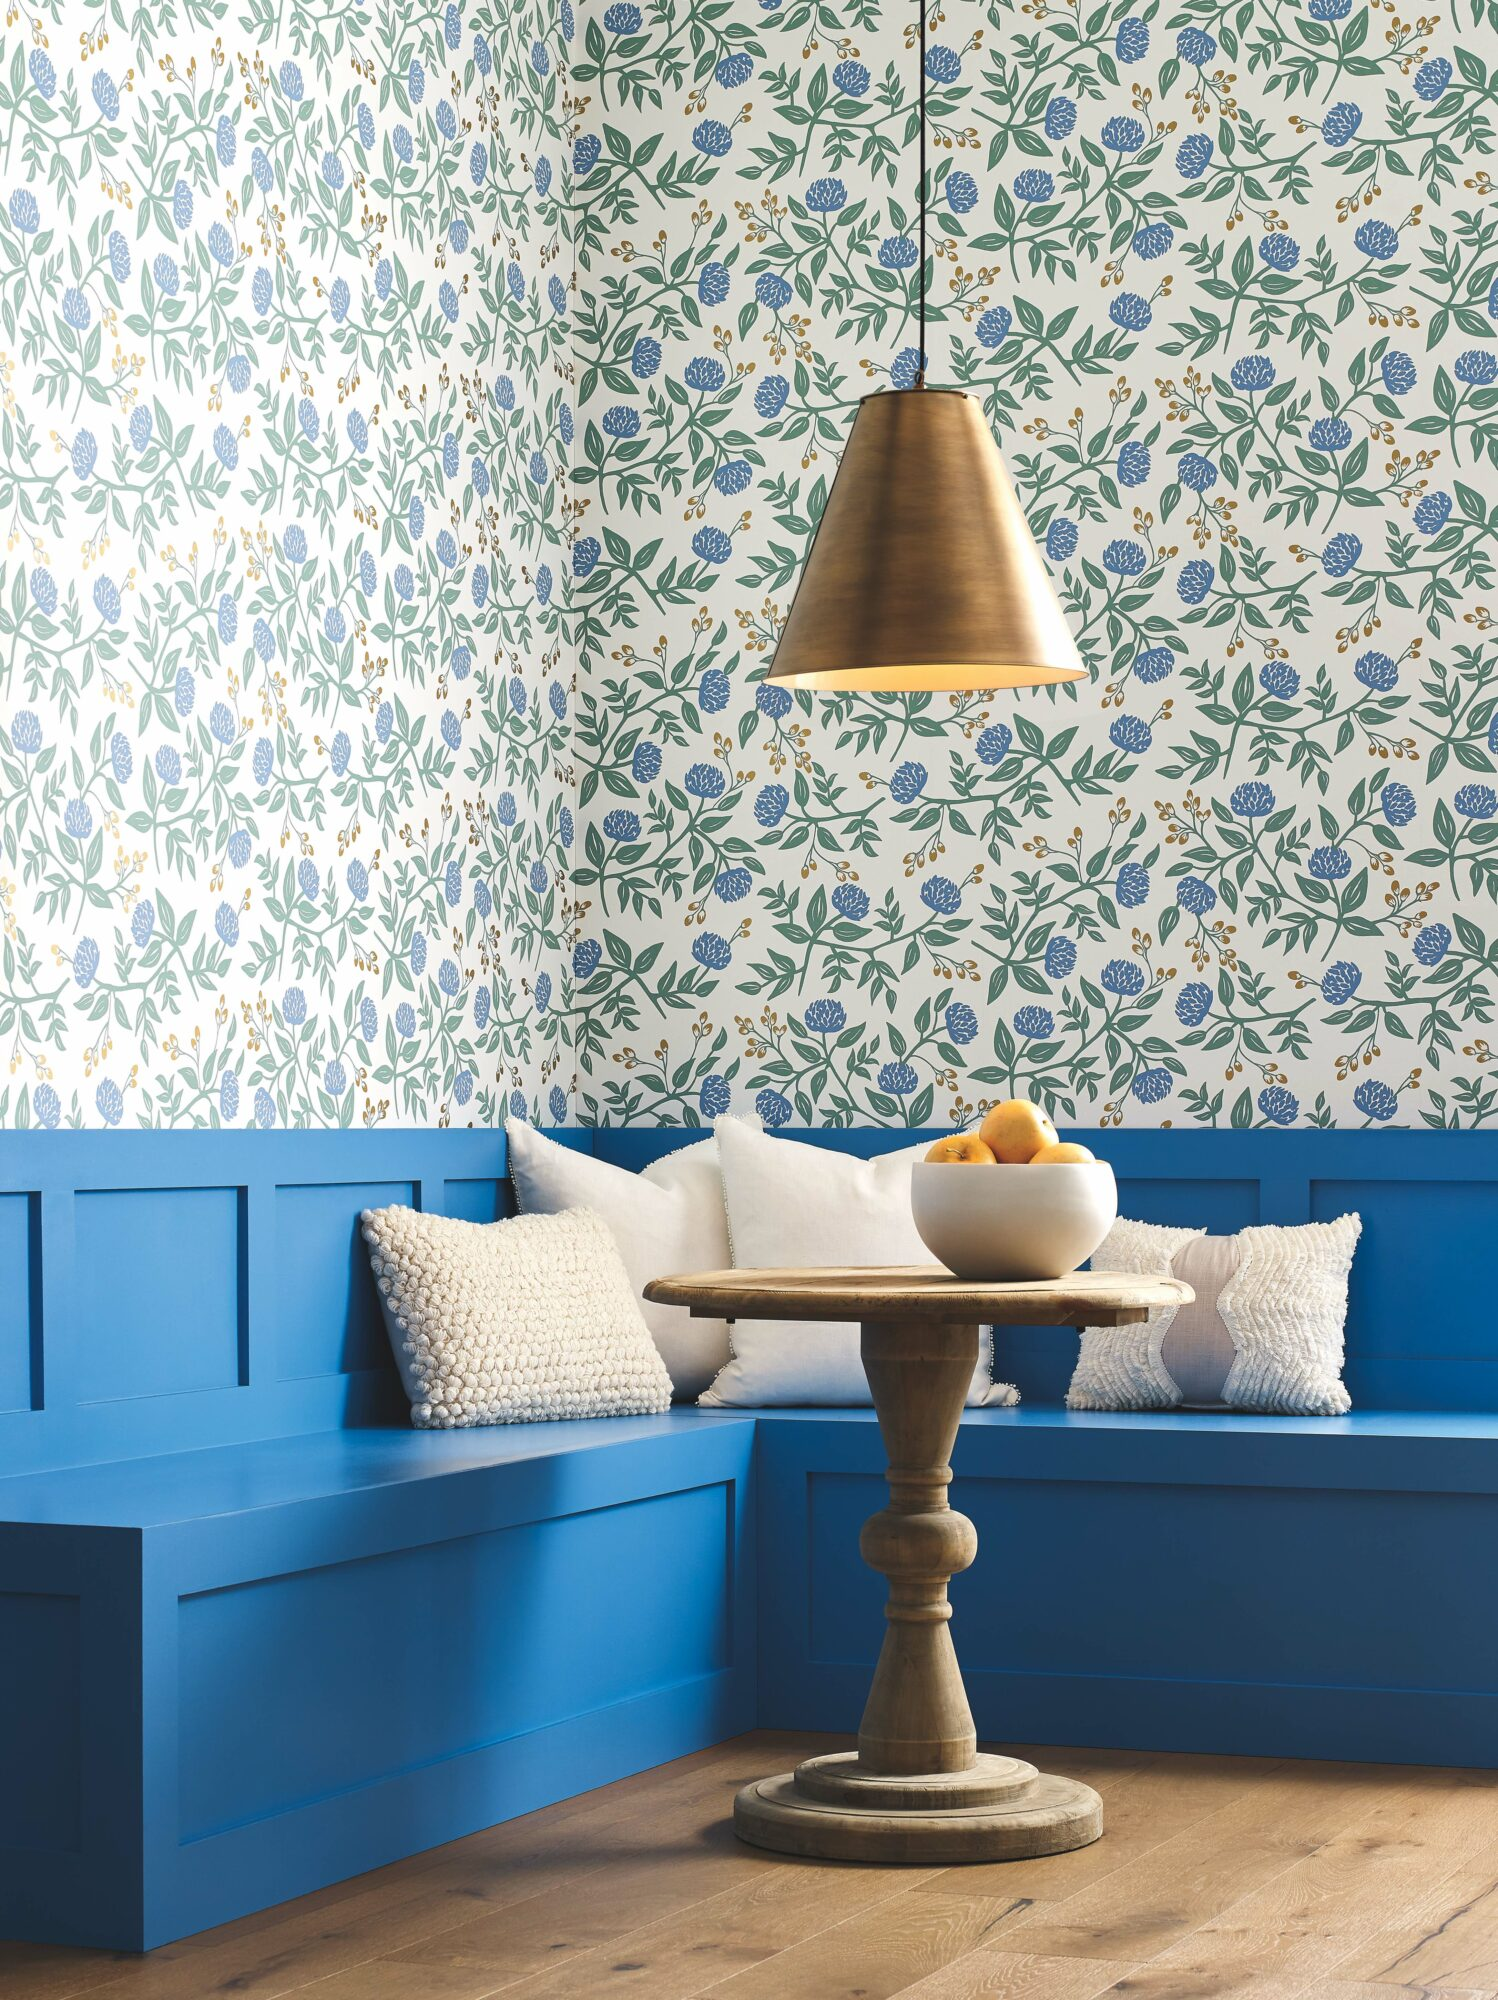 It's A Playful Prints Party With York Wallcoverings x Rifle Paper Co's New Collection